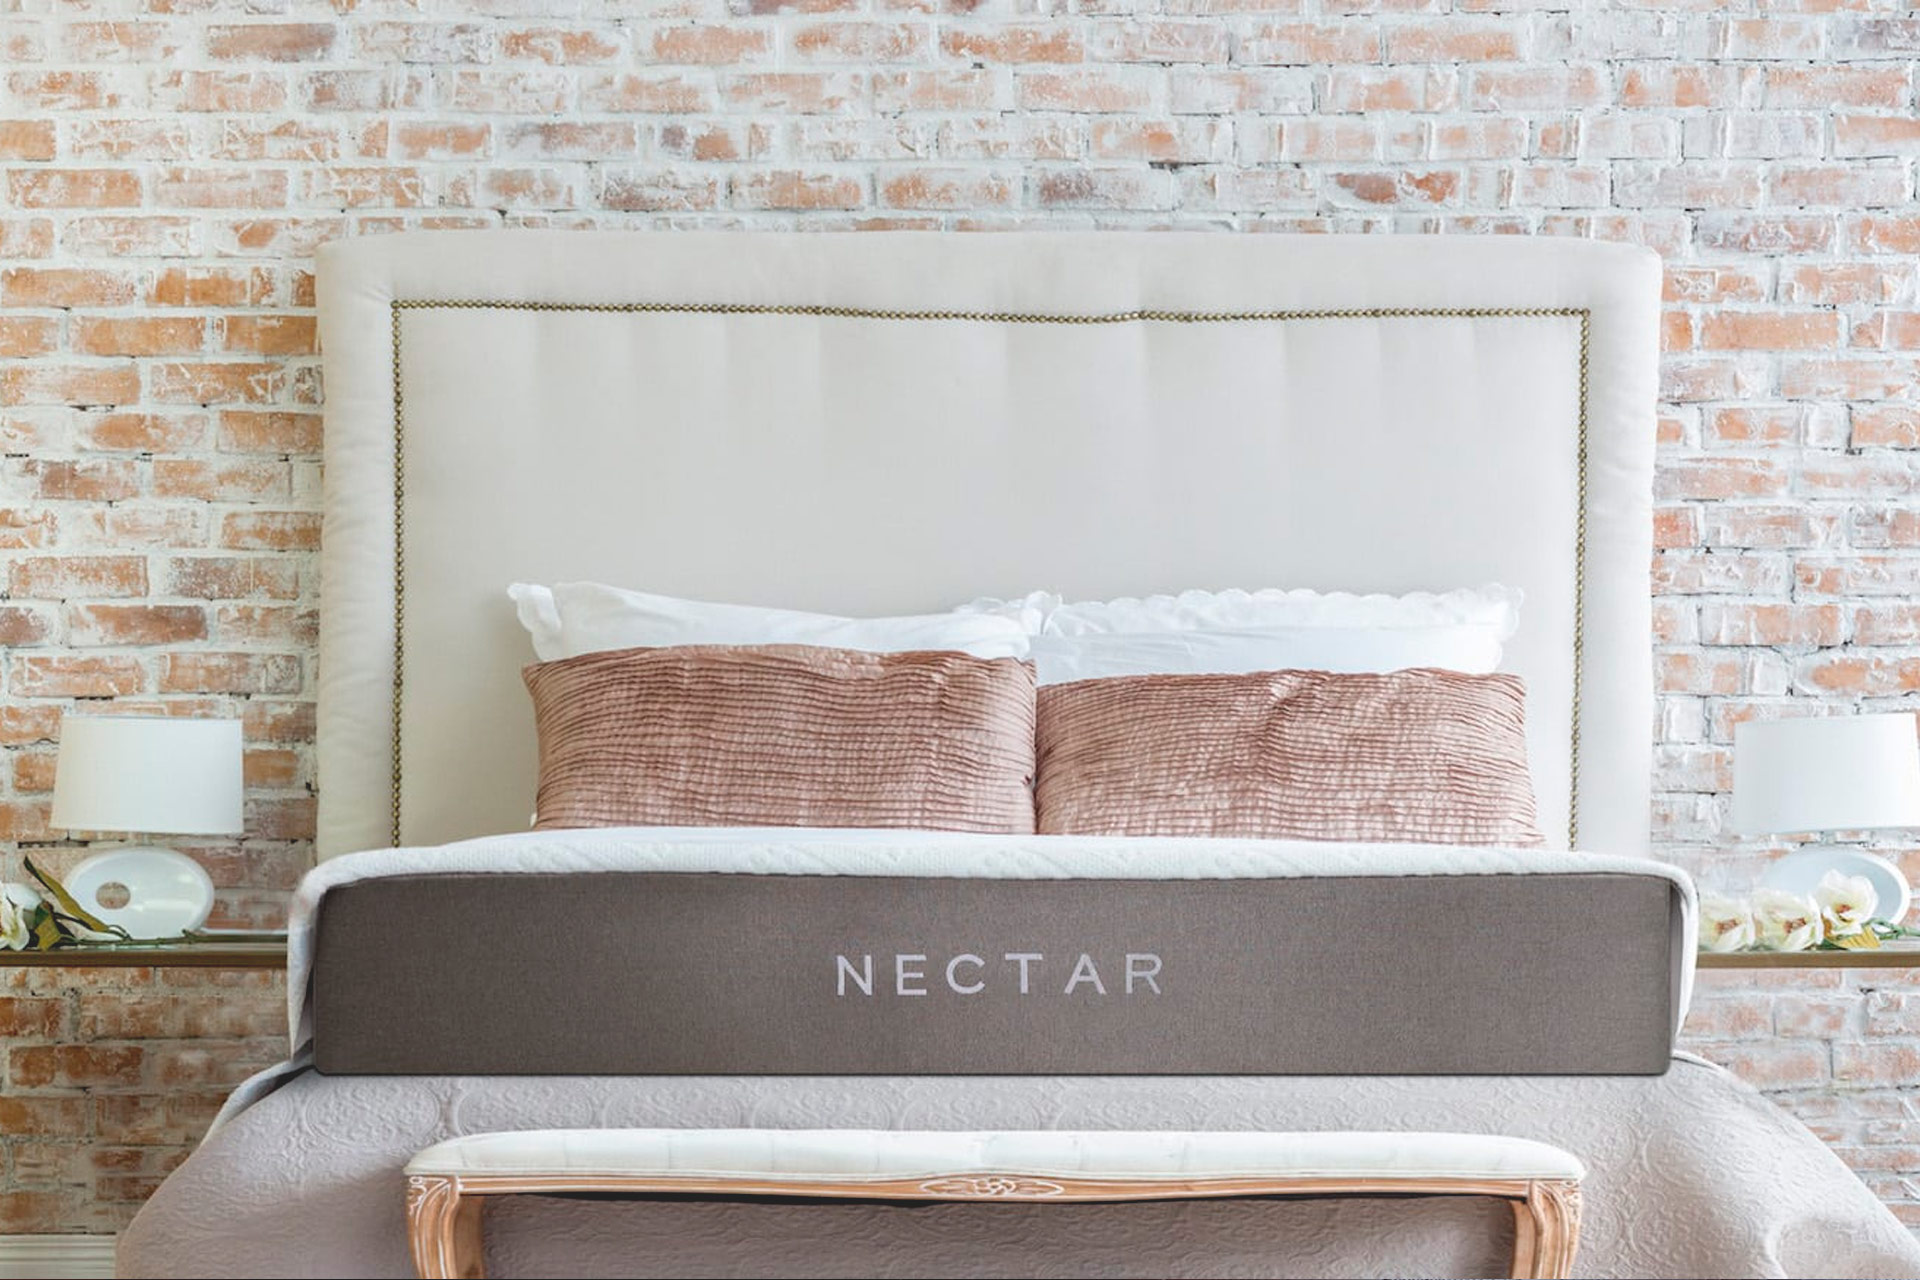 Nectar Sleep Memory Foam Mattress OrganicNewsroom